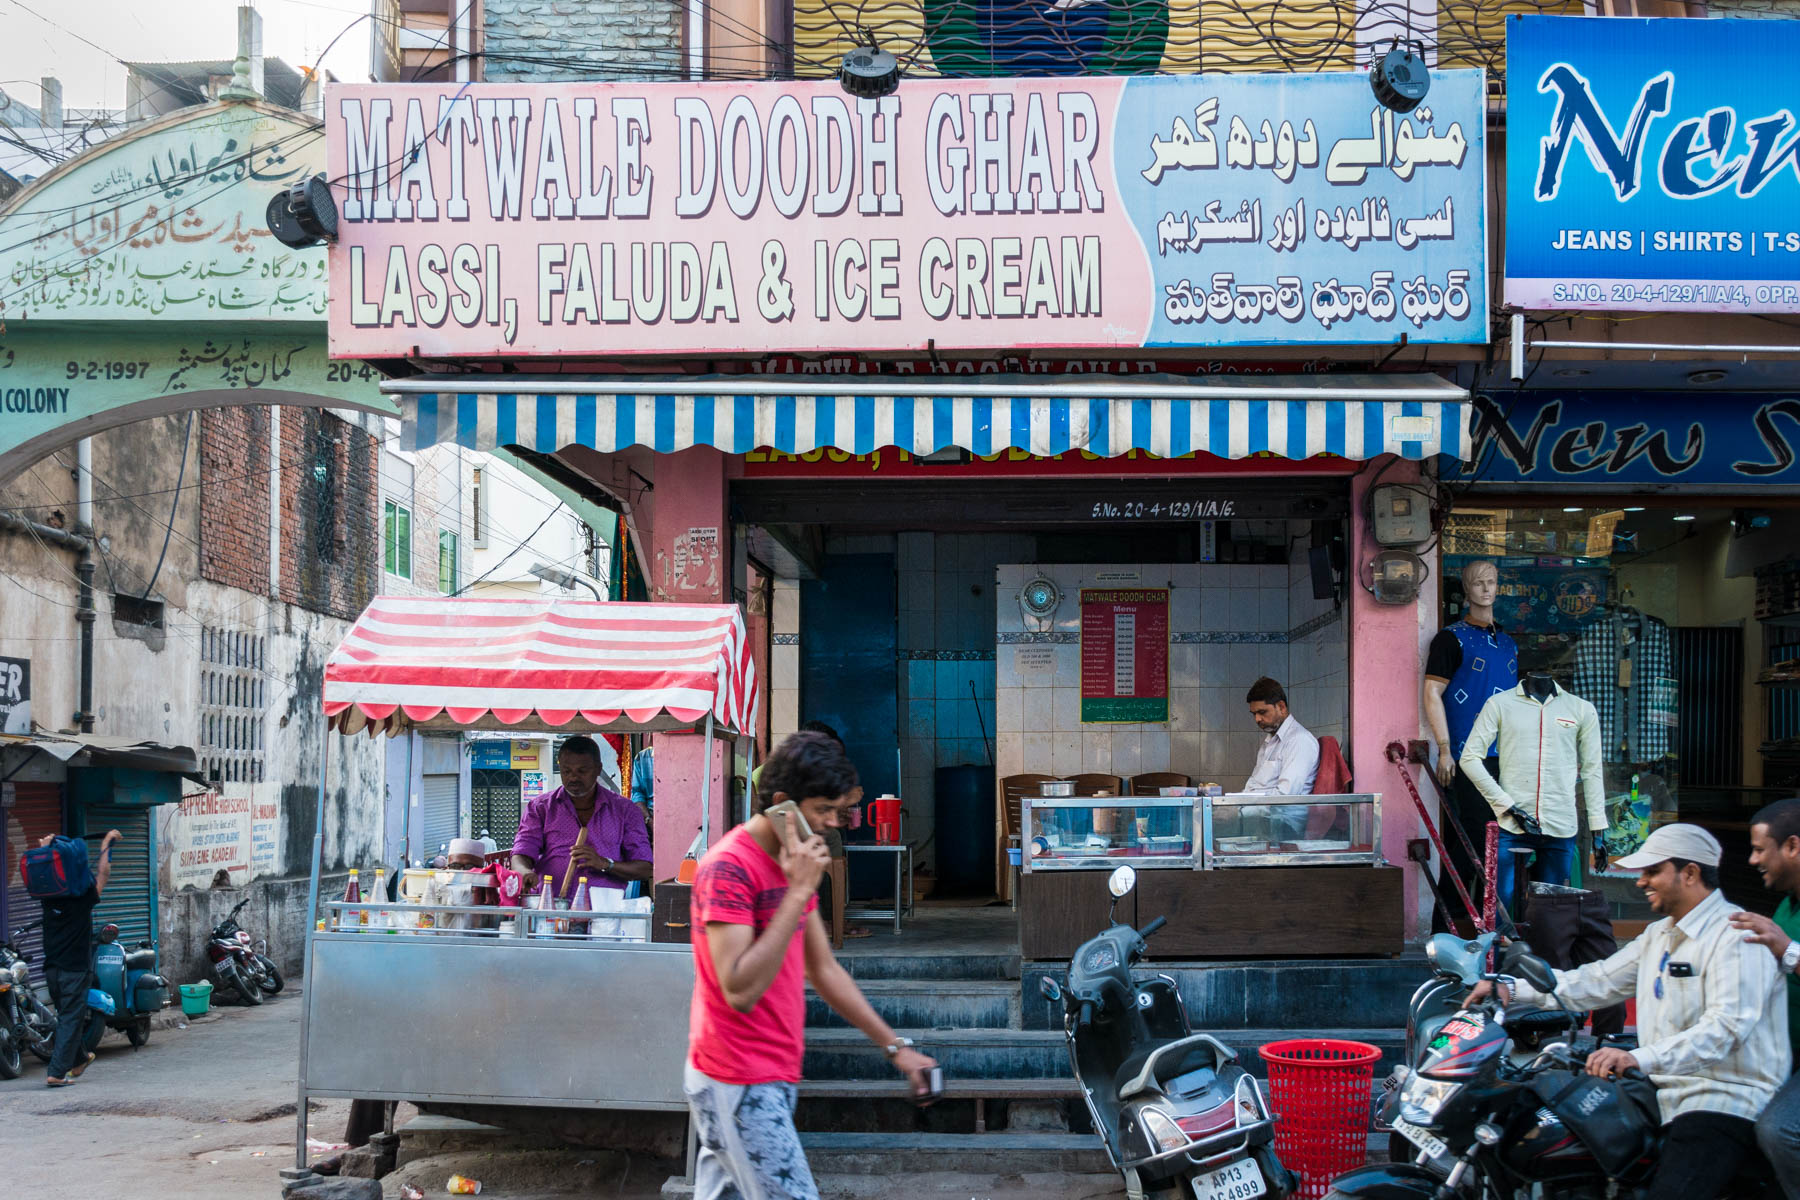 Where and what to eat in Hyderabad's Old City - Matwale Doodh Ghar Lassi shop - Lost WIth Purpose